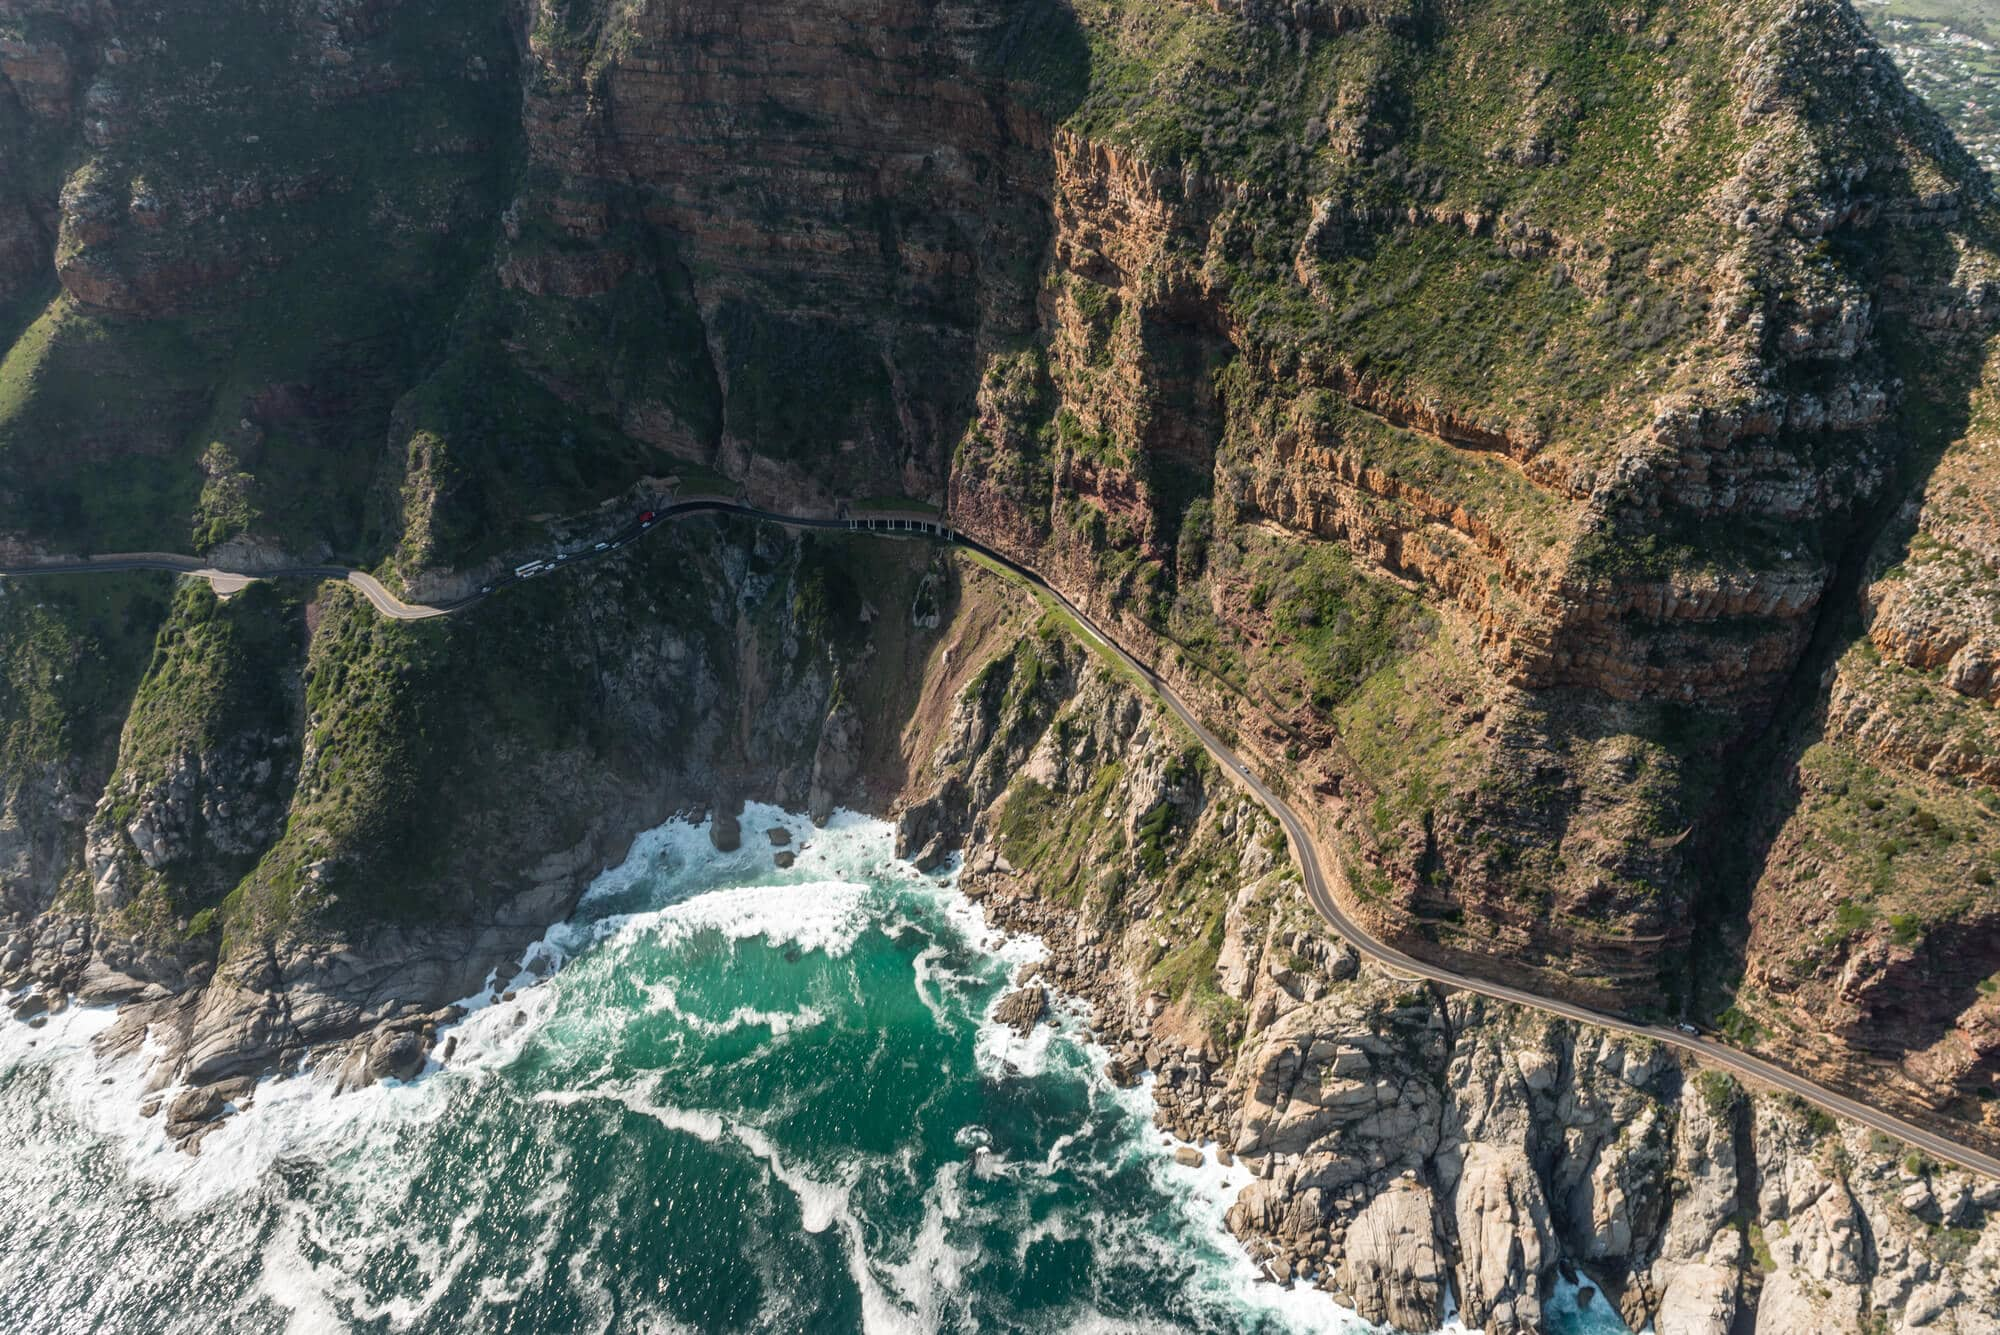 A road snakes along the rocky coast of a green mountain with the ocean below